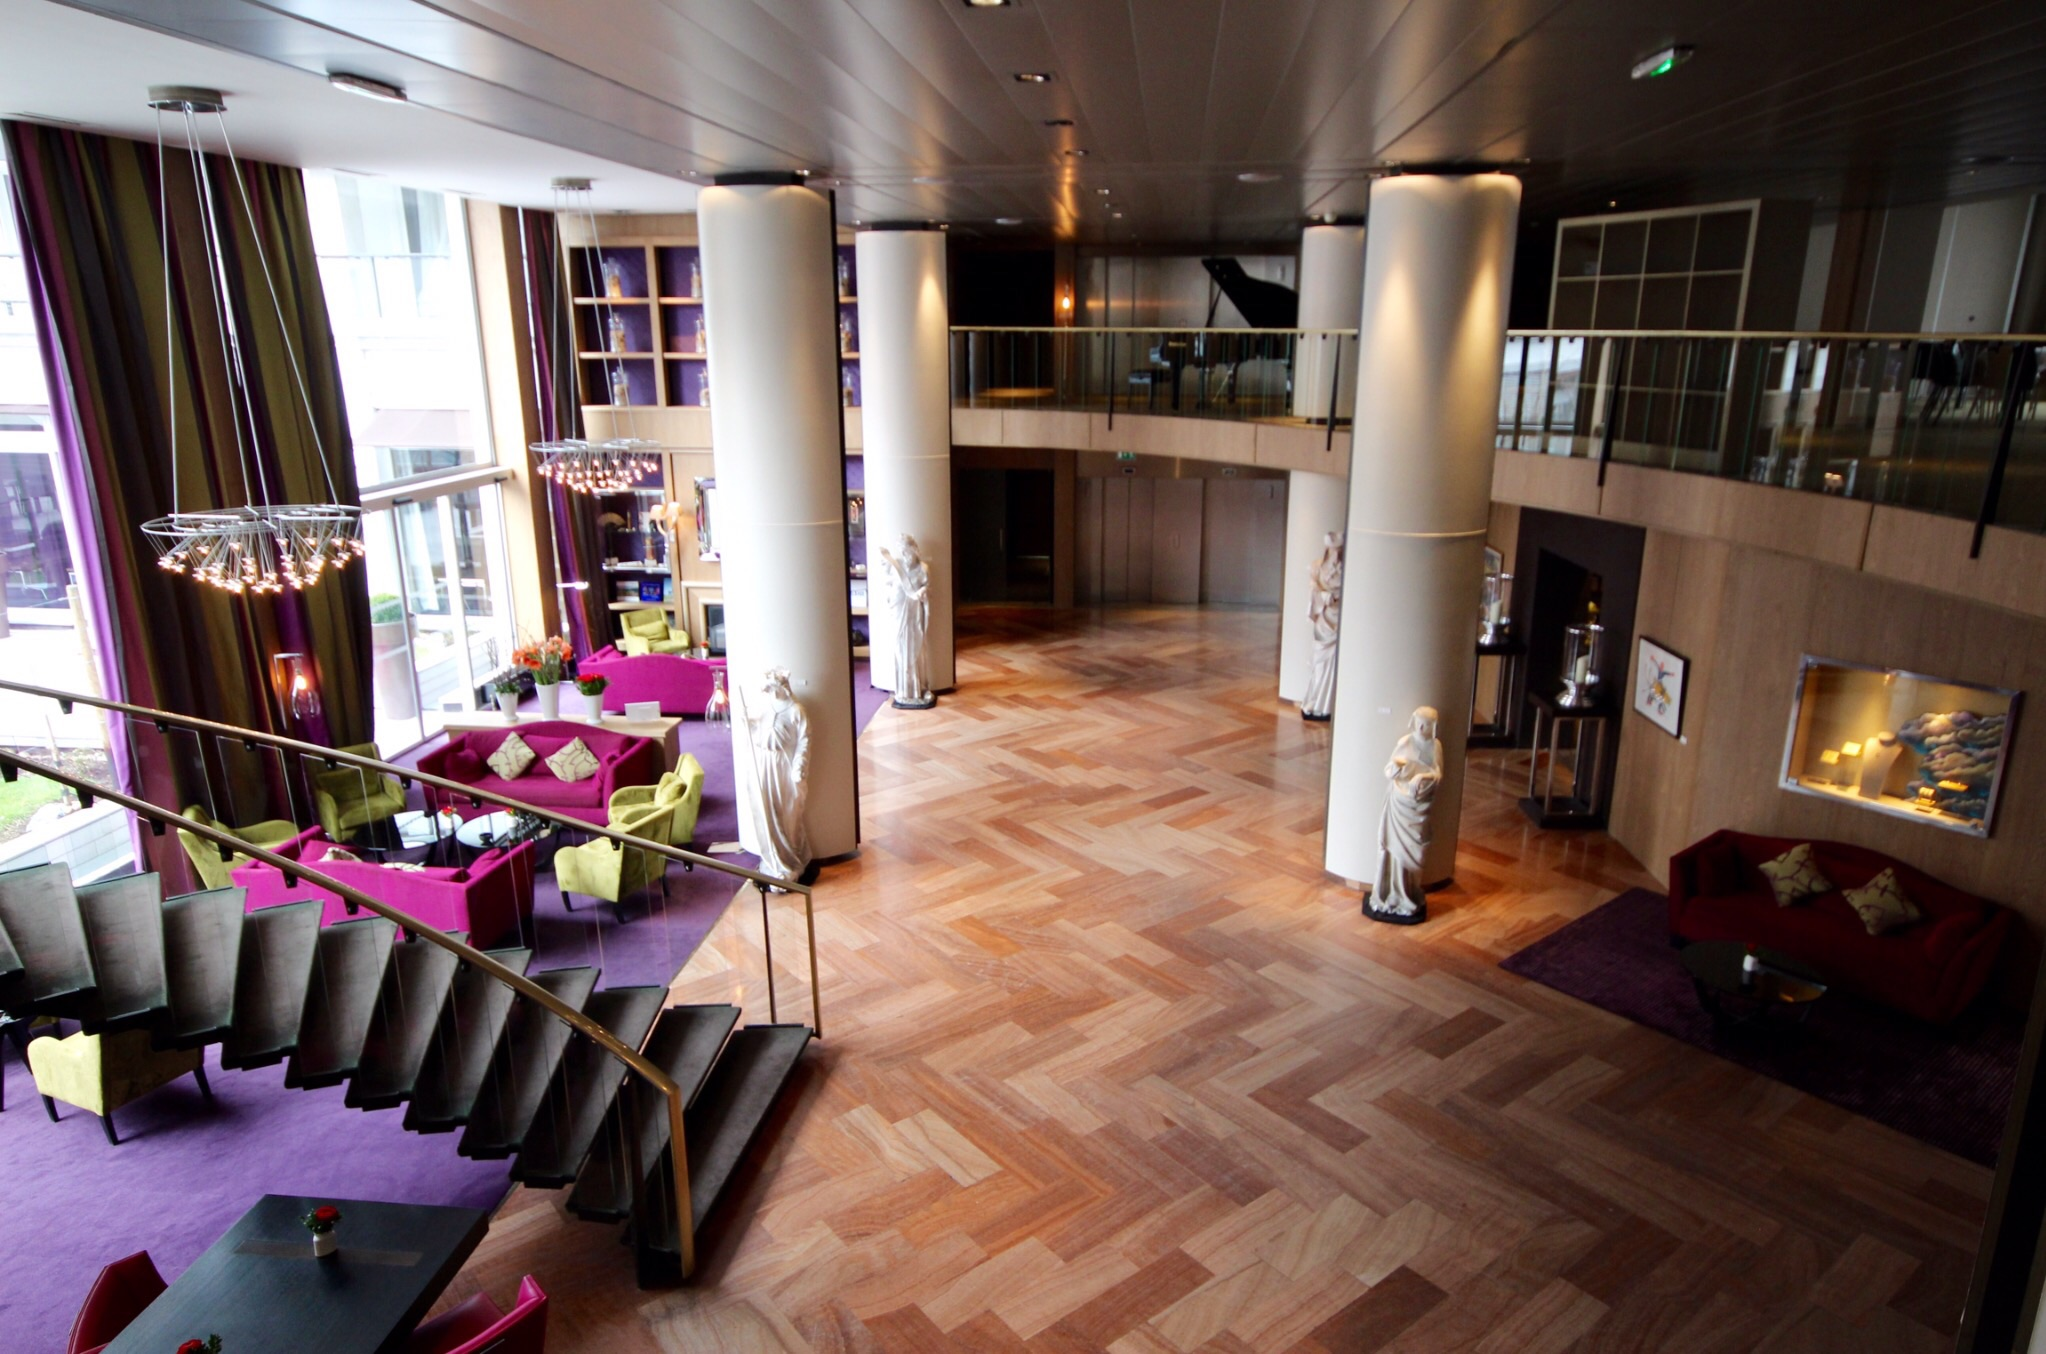 A family weekend at Sofitel Strasbourg